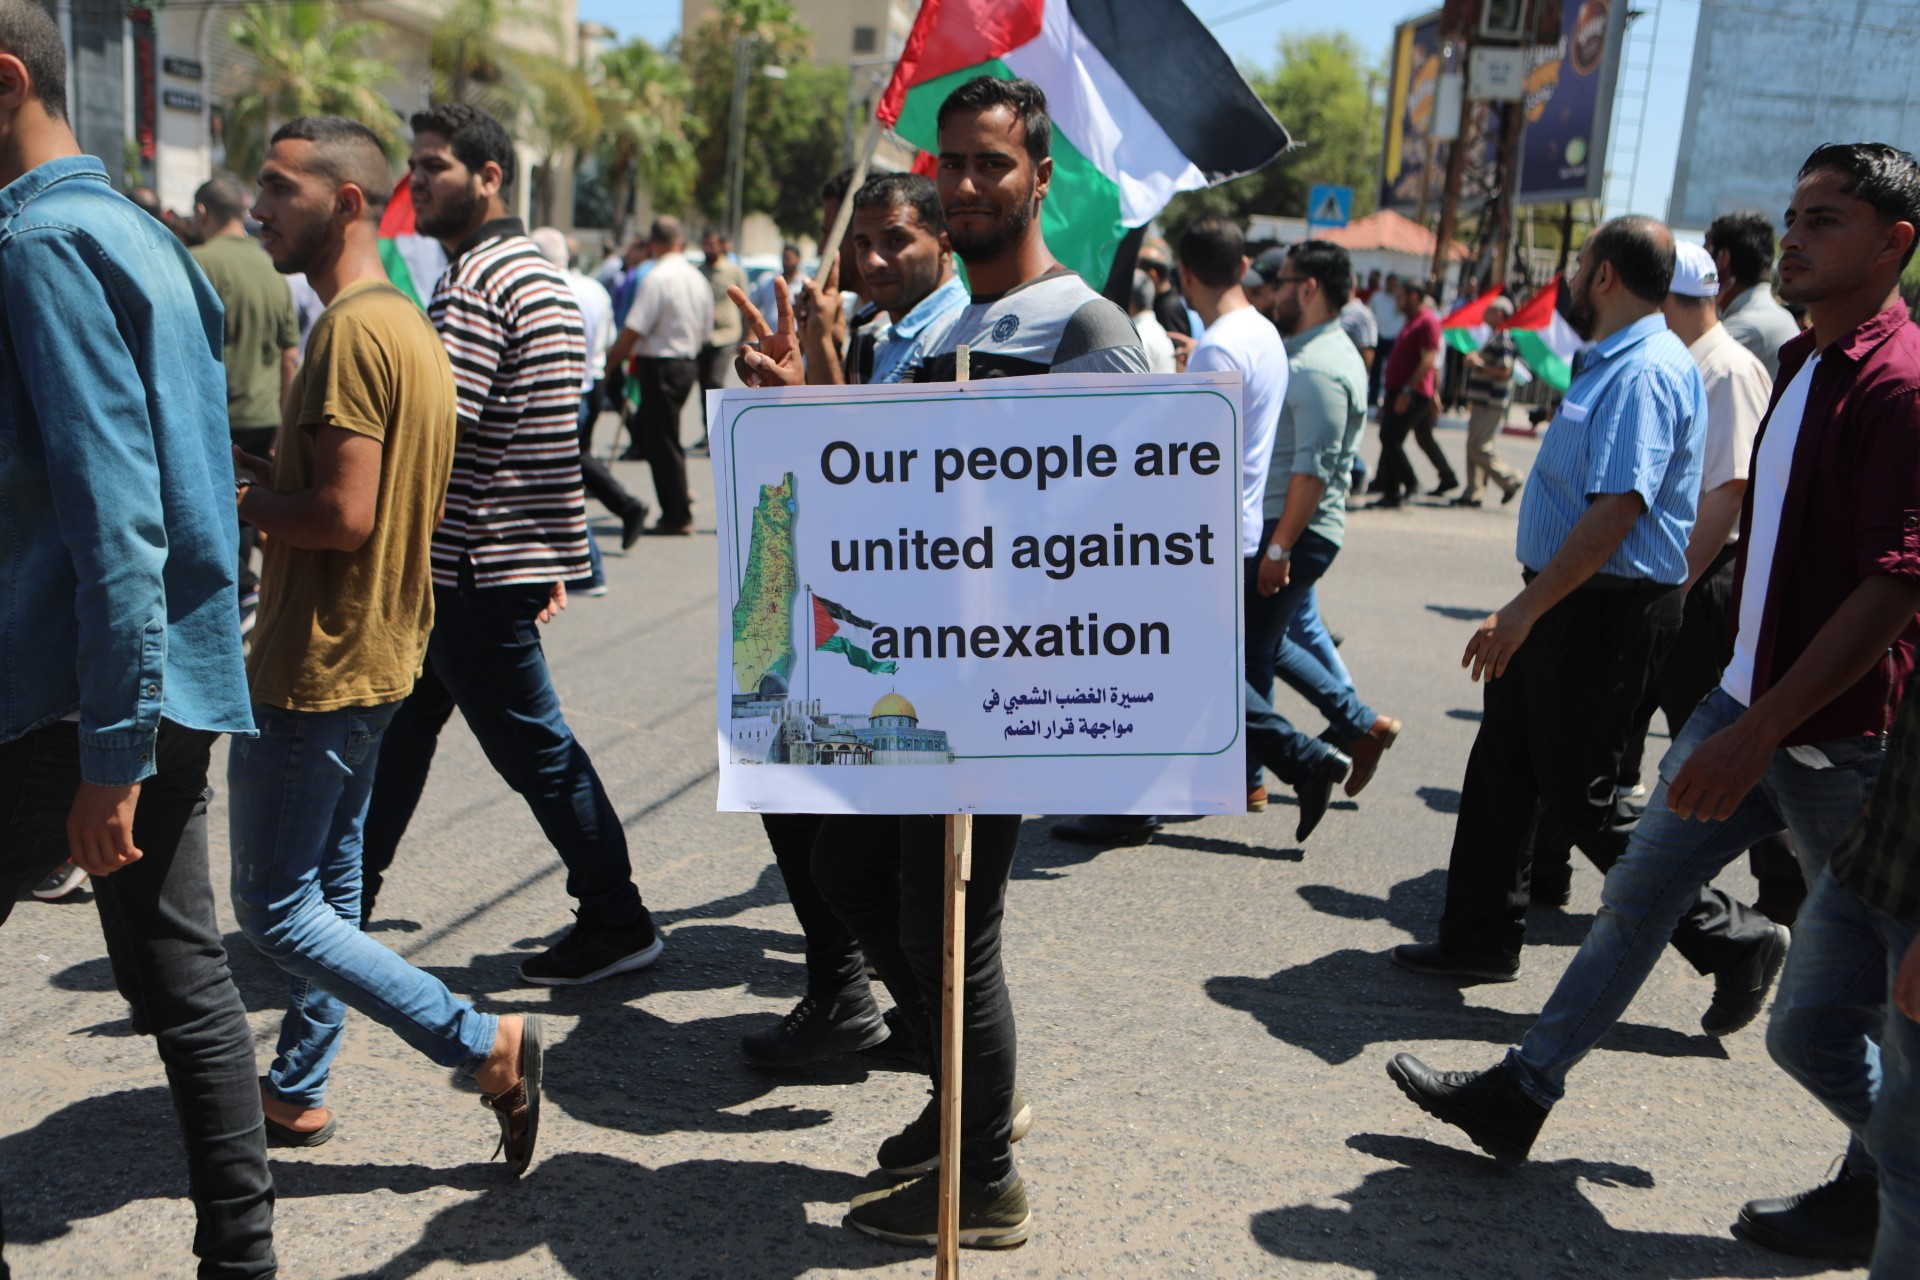 A Palestinian carrying a placard during a protest against Israeli annexation in the Gaza City on 1 July 2020 (MEE/Mohammed Hajjar)